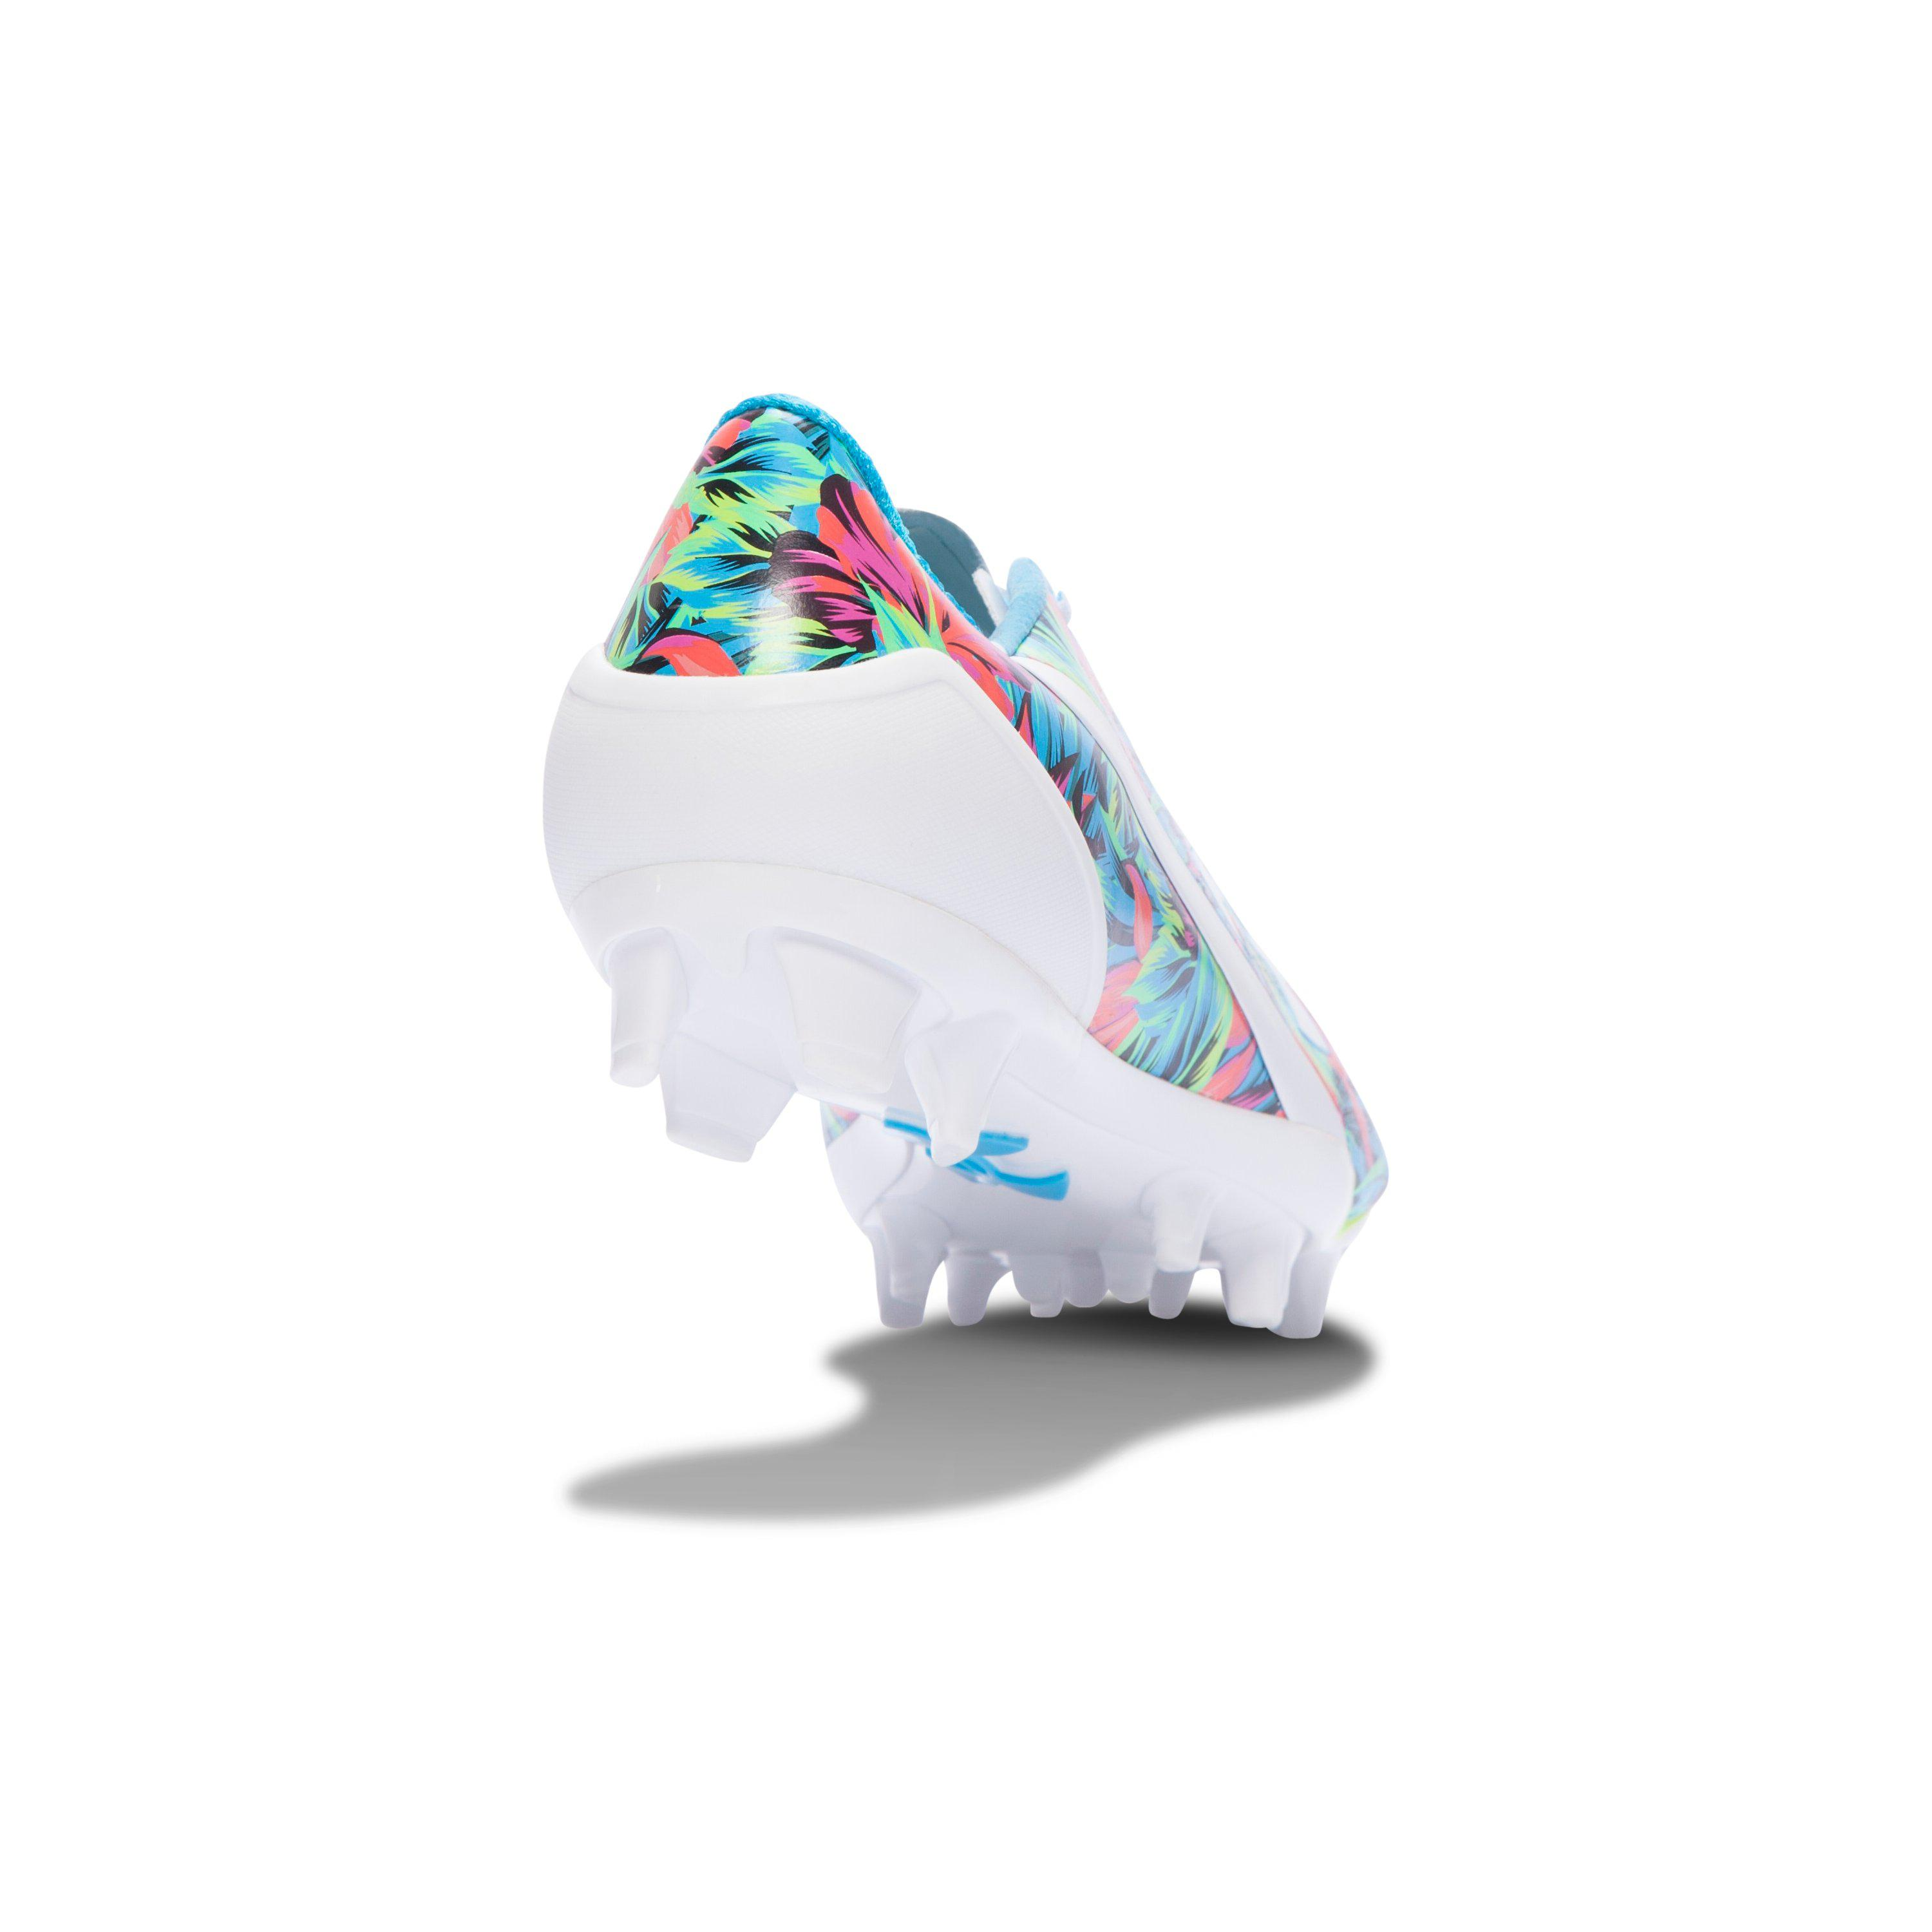 c33035a95afd Under Armour Men's Ua Spotlight Football Cleats — Limited Edition in ...